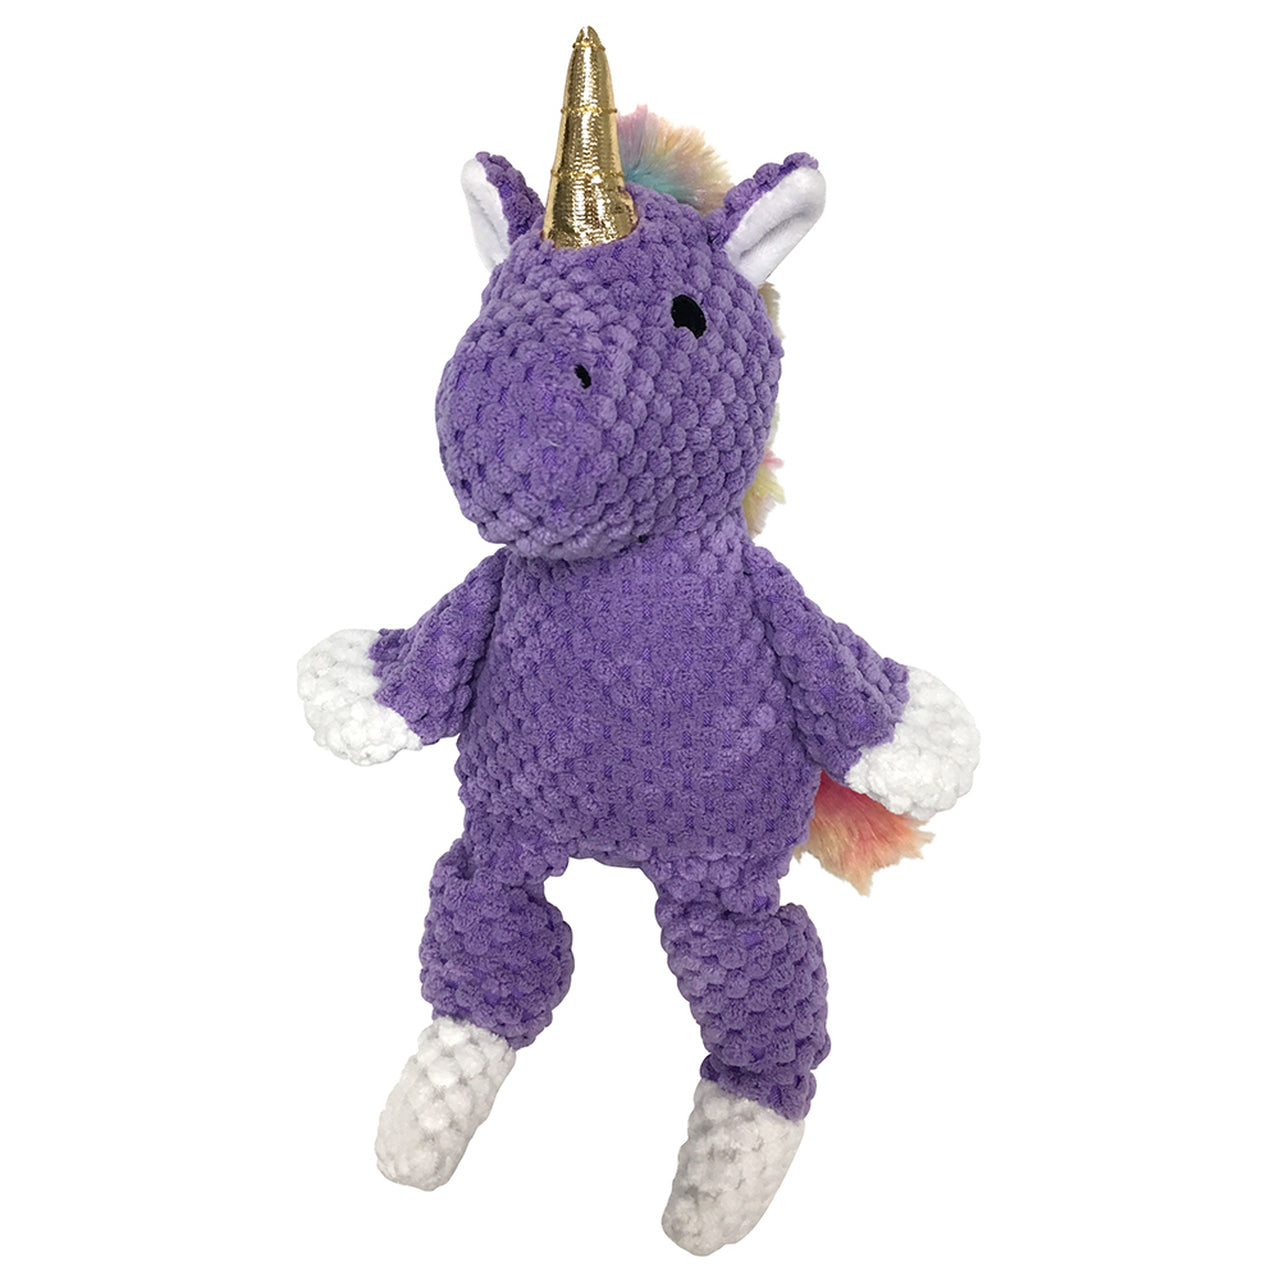 FouFou Rainbow Bright Knotted Toy Unicorn - Purple